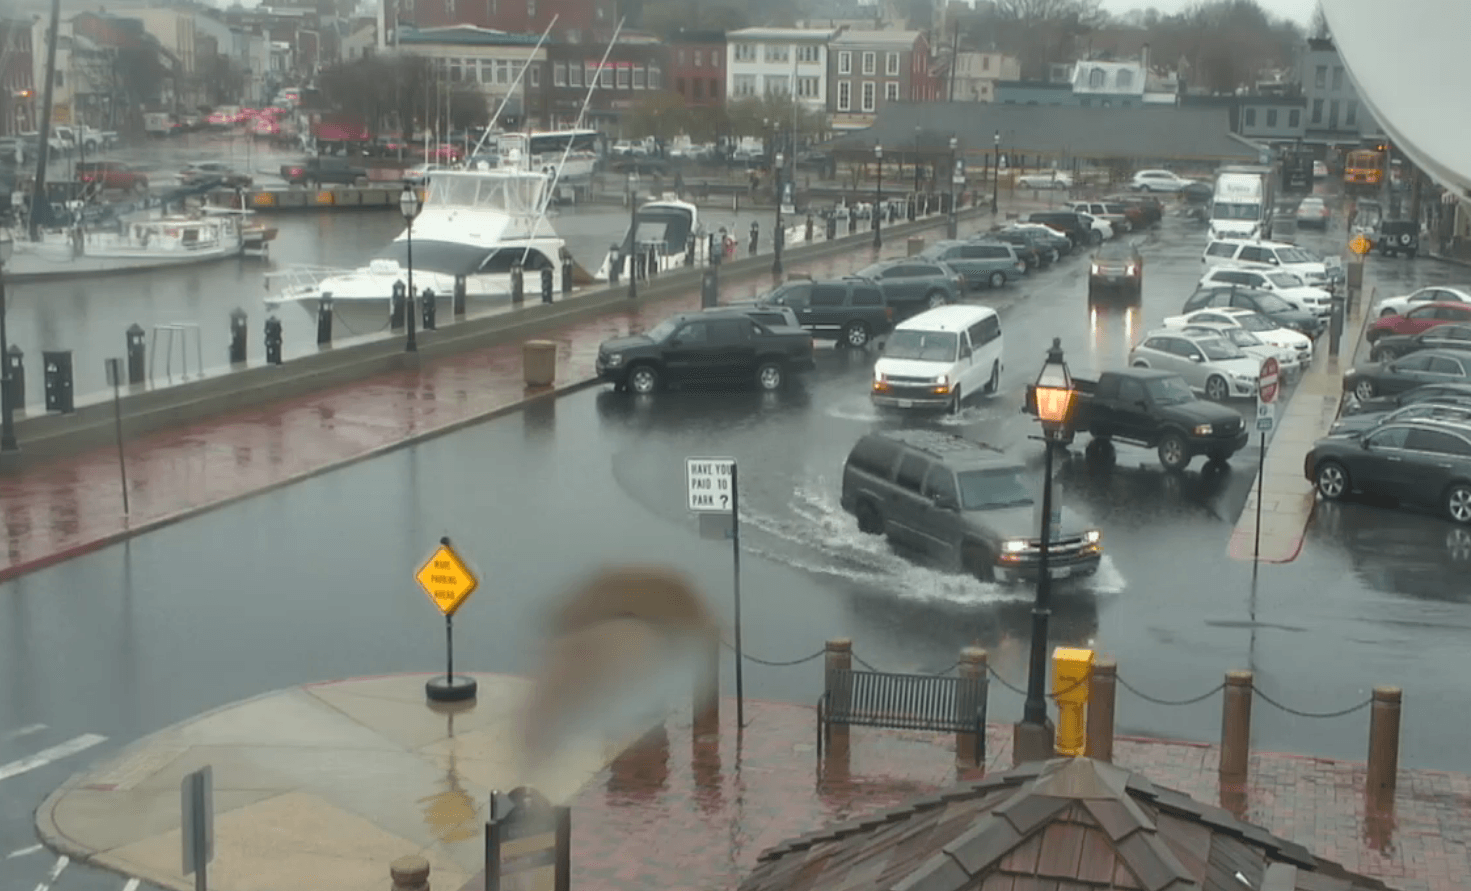 Flooding at City Dock